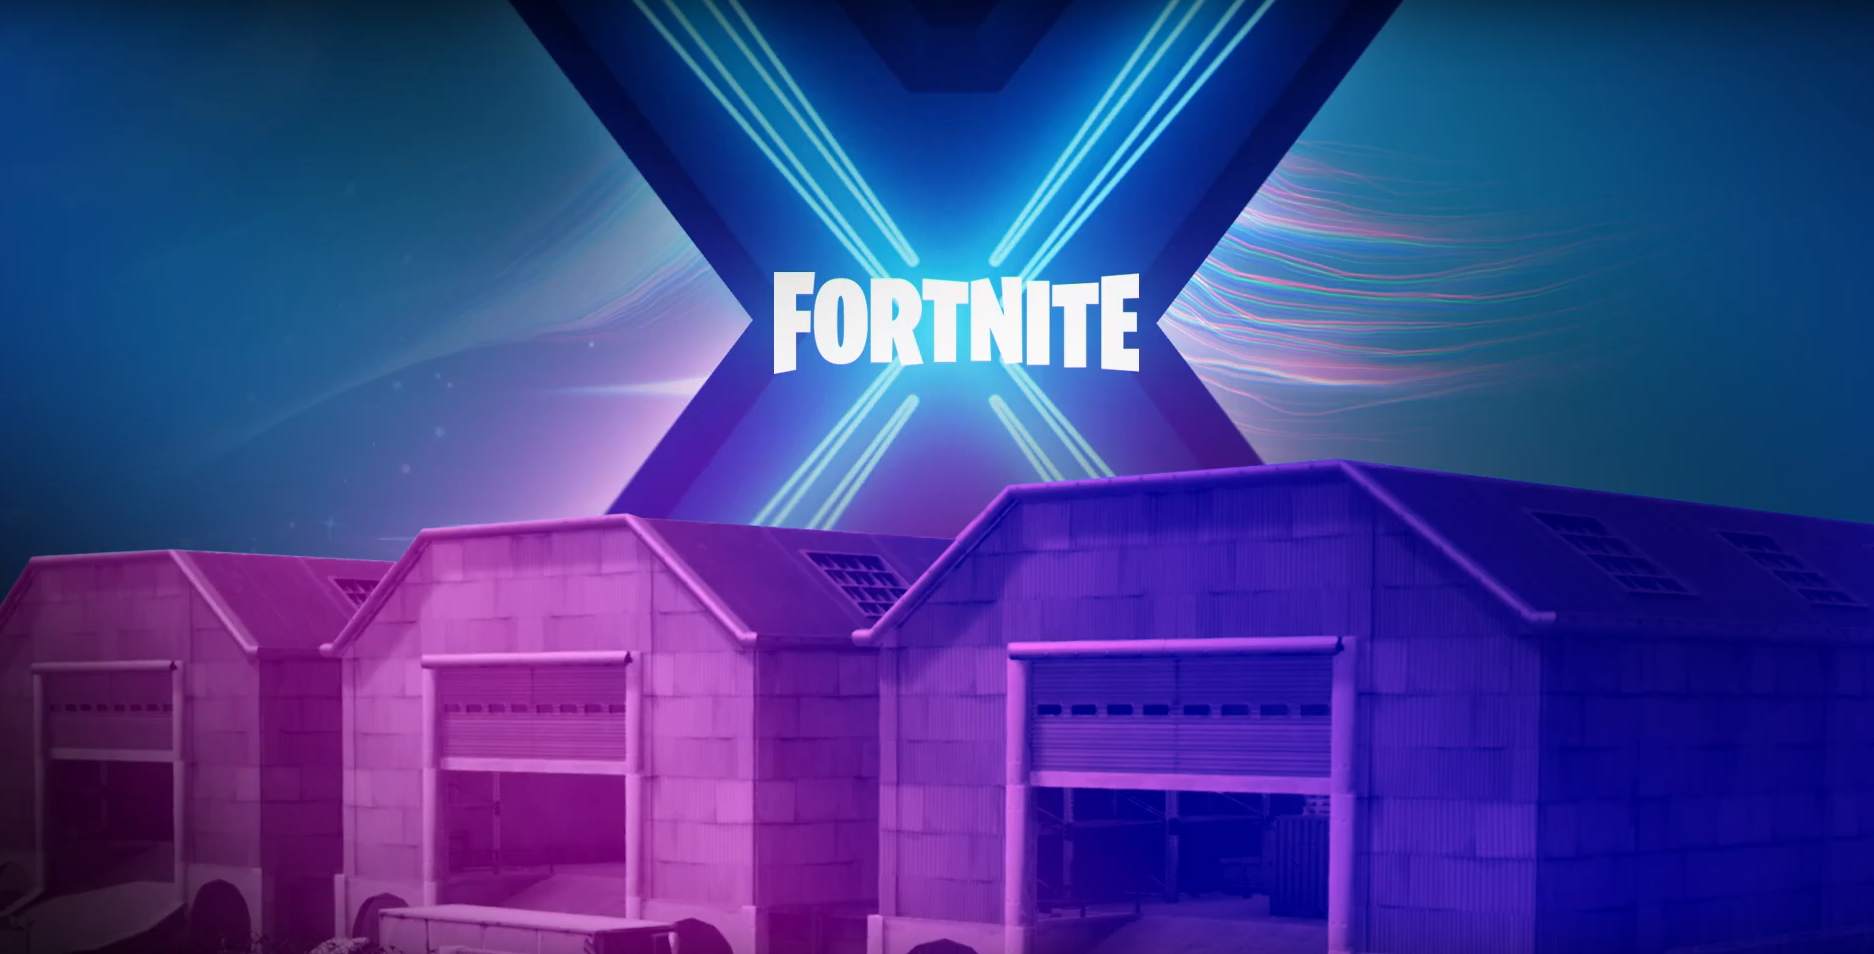 Fortnite Zero Point Orb Is Now In Stage 3 Leading Up To Season 10 The Zero Point Orb In Fortnite Is Now In Stage 3 Which Is Leading Epic Games Fortnite Teaser